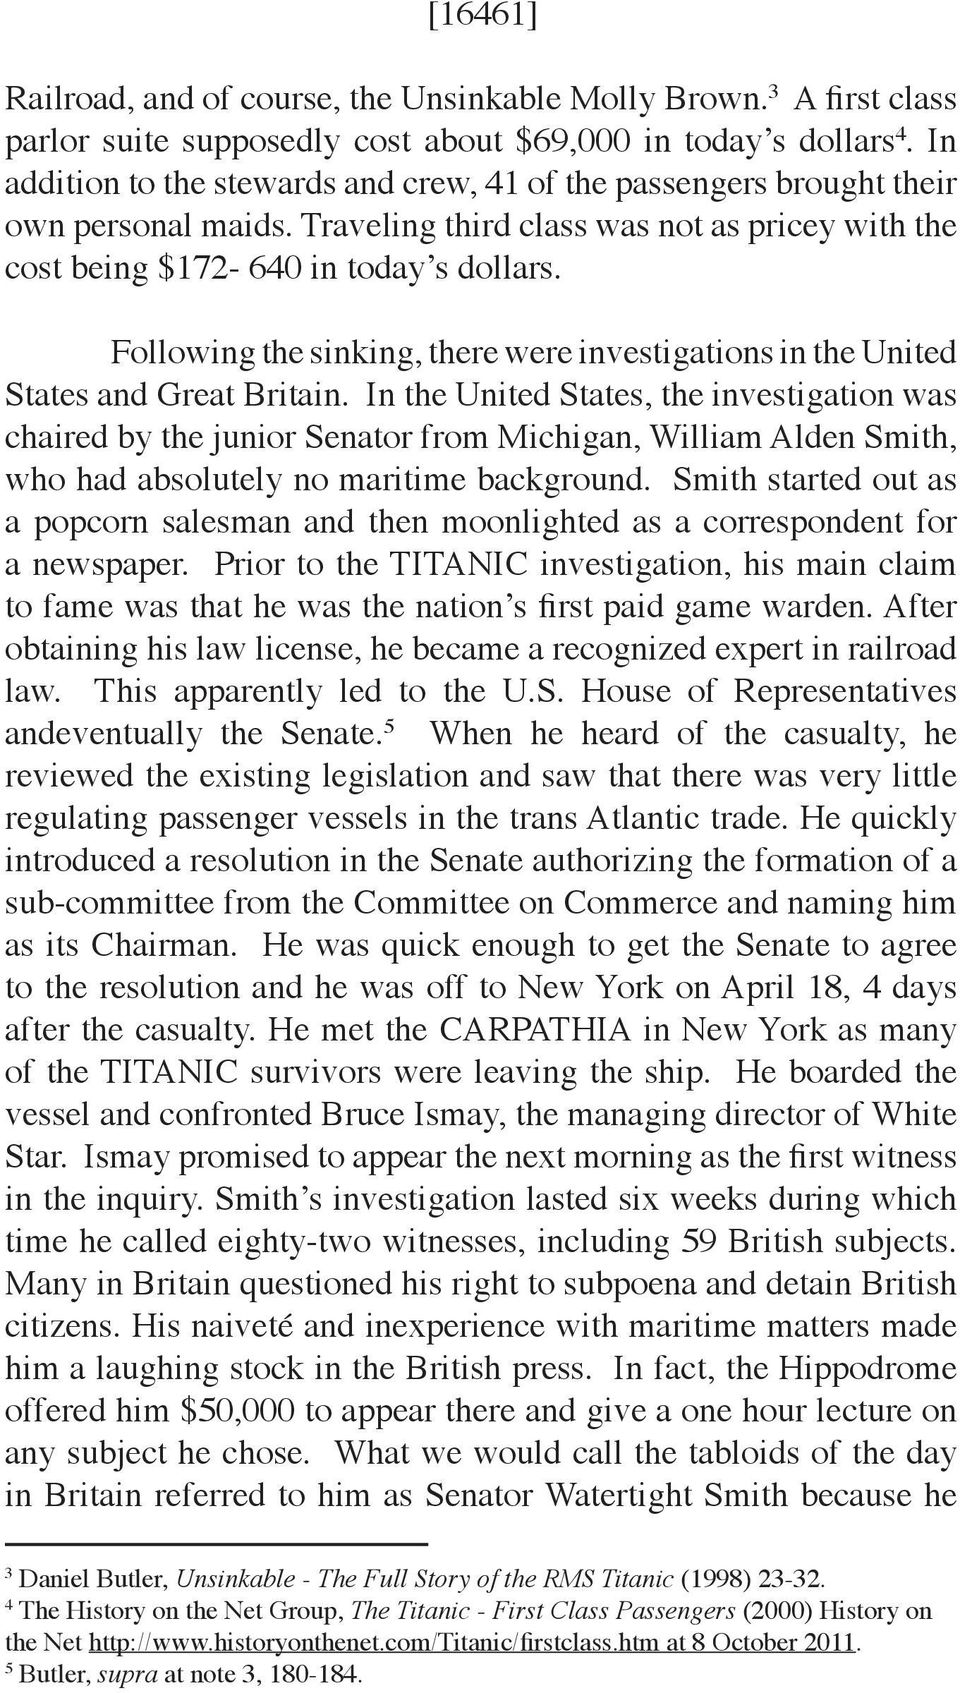 Following the sinking, there were investigations in the United States and Great Britain.